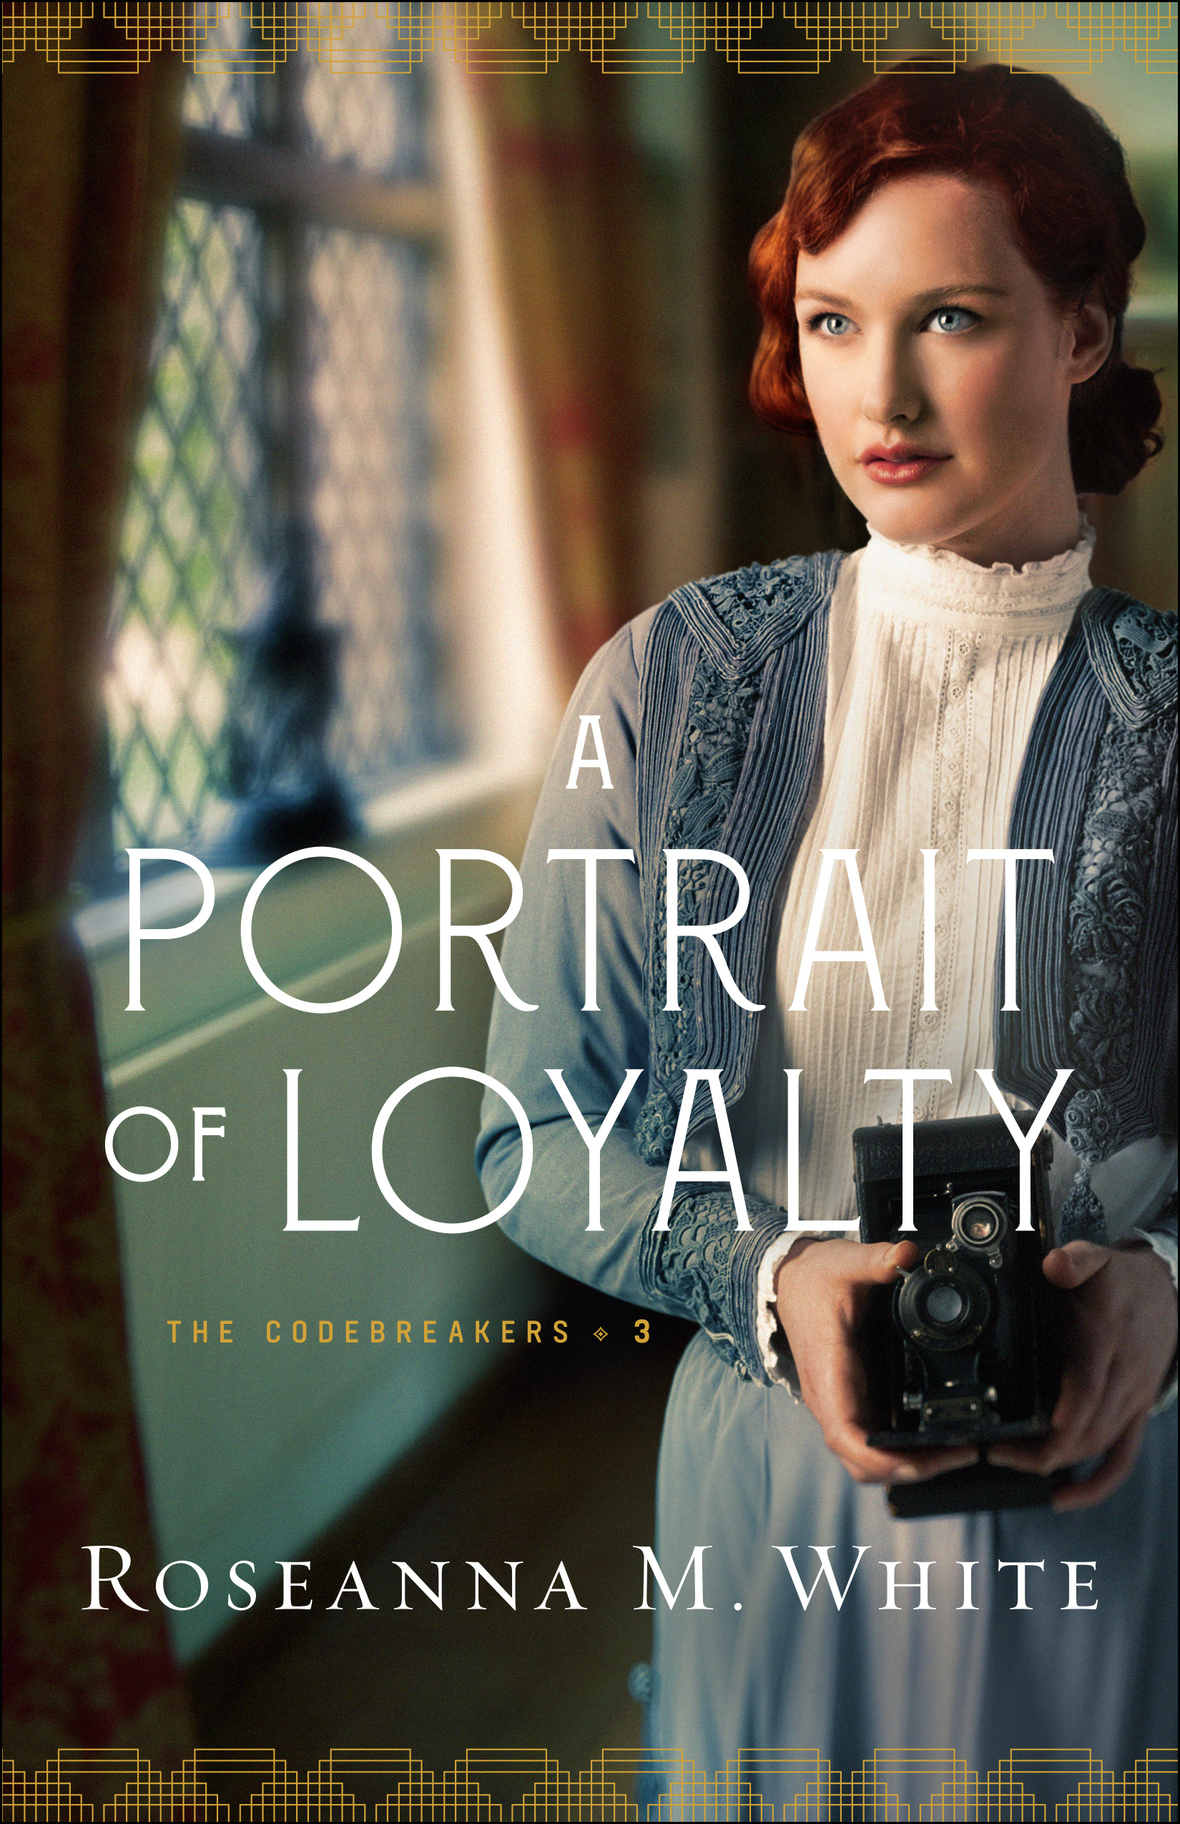 A Portrait of Loyalty (The Codebreakers, #3)